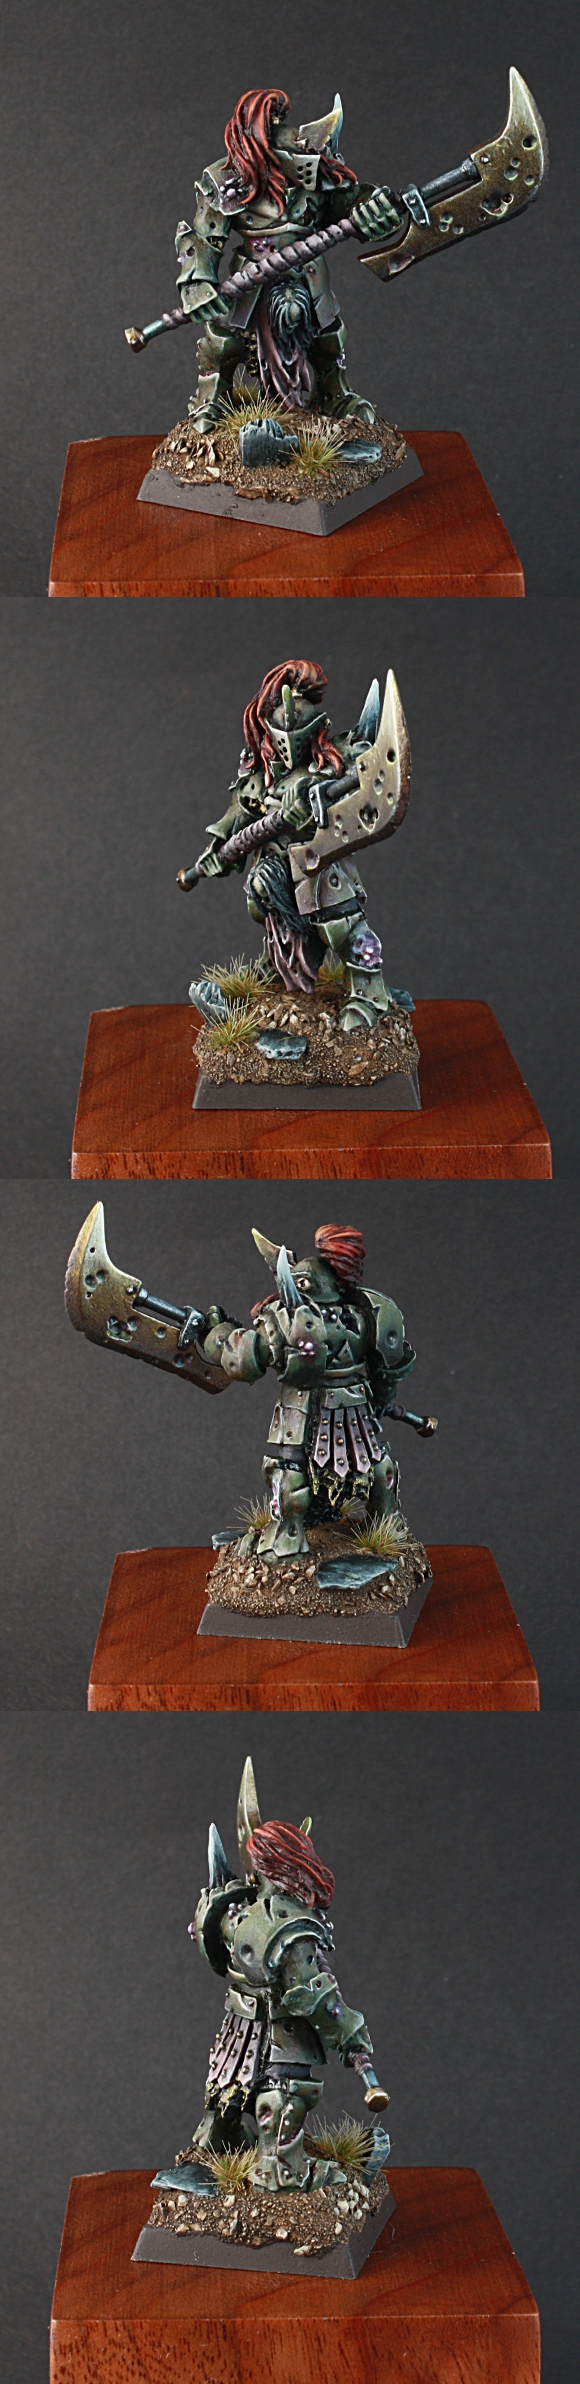 Nurgle Plague Lord z avatary of War